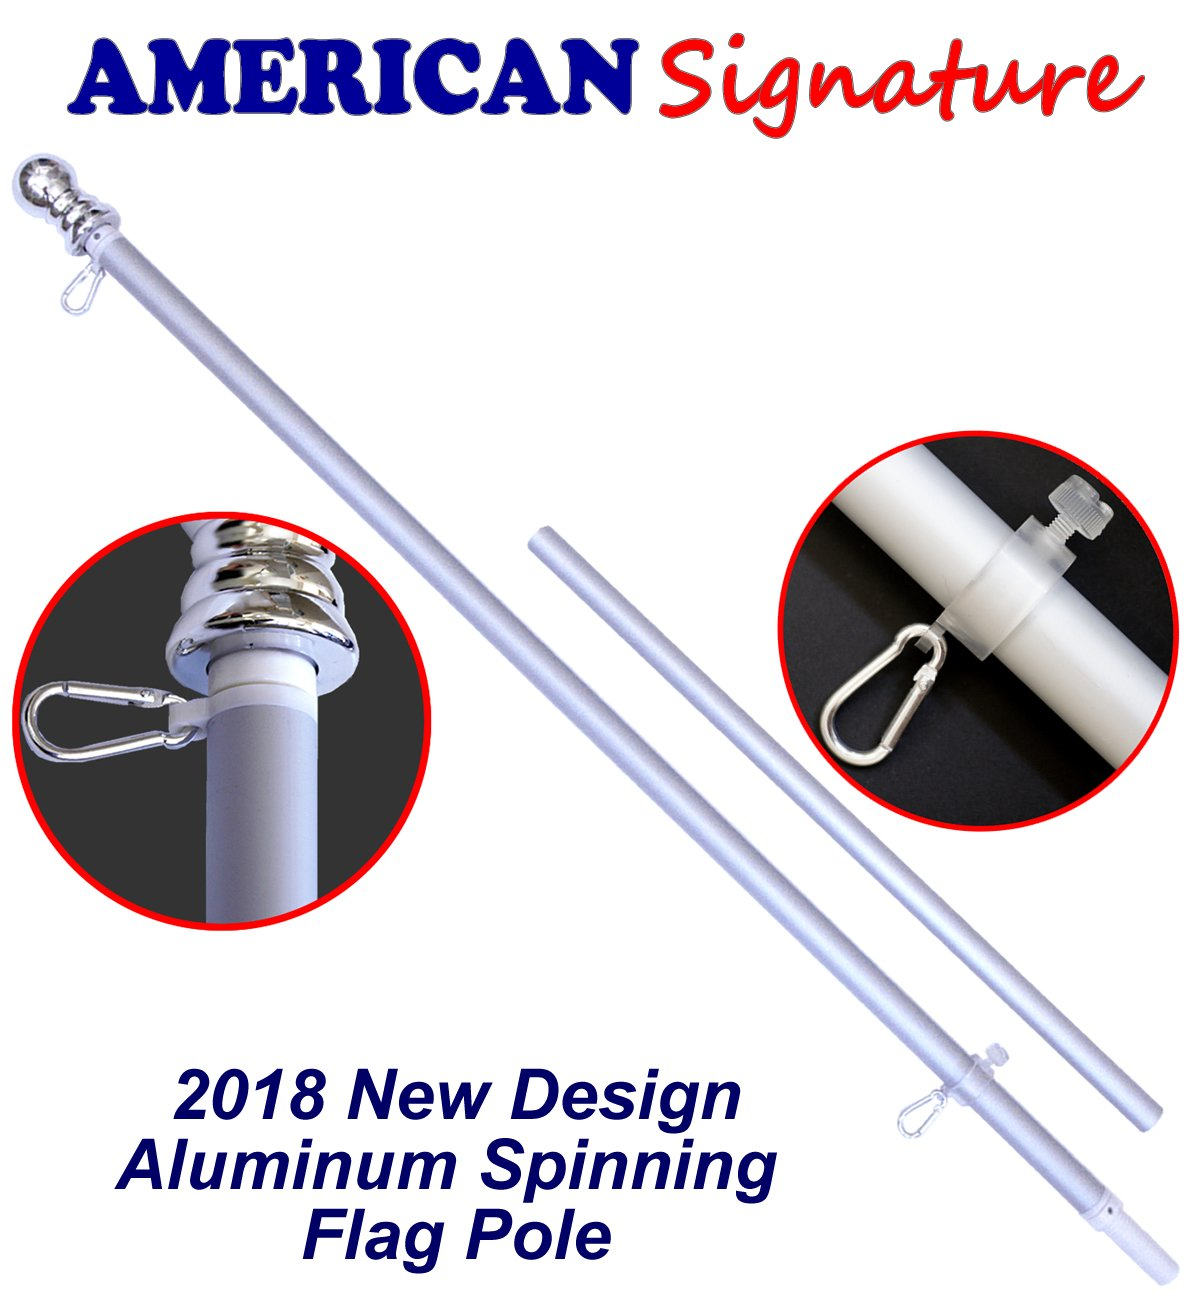 American Signature Flag Pole 5 Ft - Heavy Duty Aluminum Spinning Tangle Free Flagpole for Sale - Outdoor Wall Mount Flag Pole for Residential or Commercial. (Silver, 5')